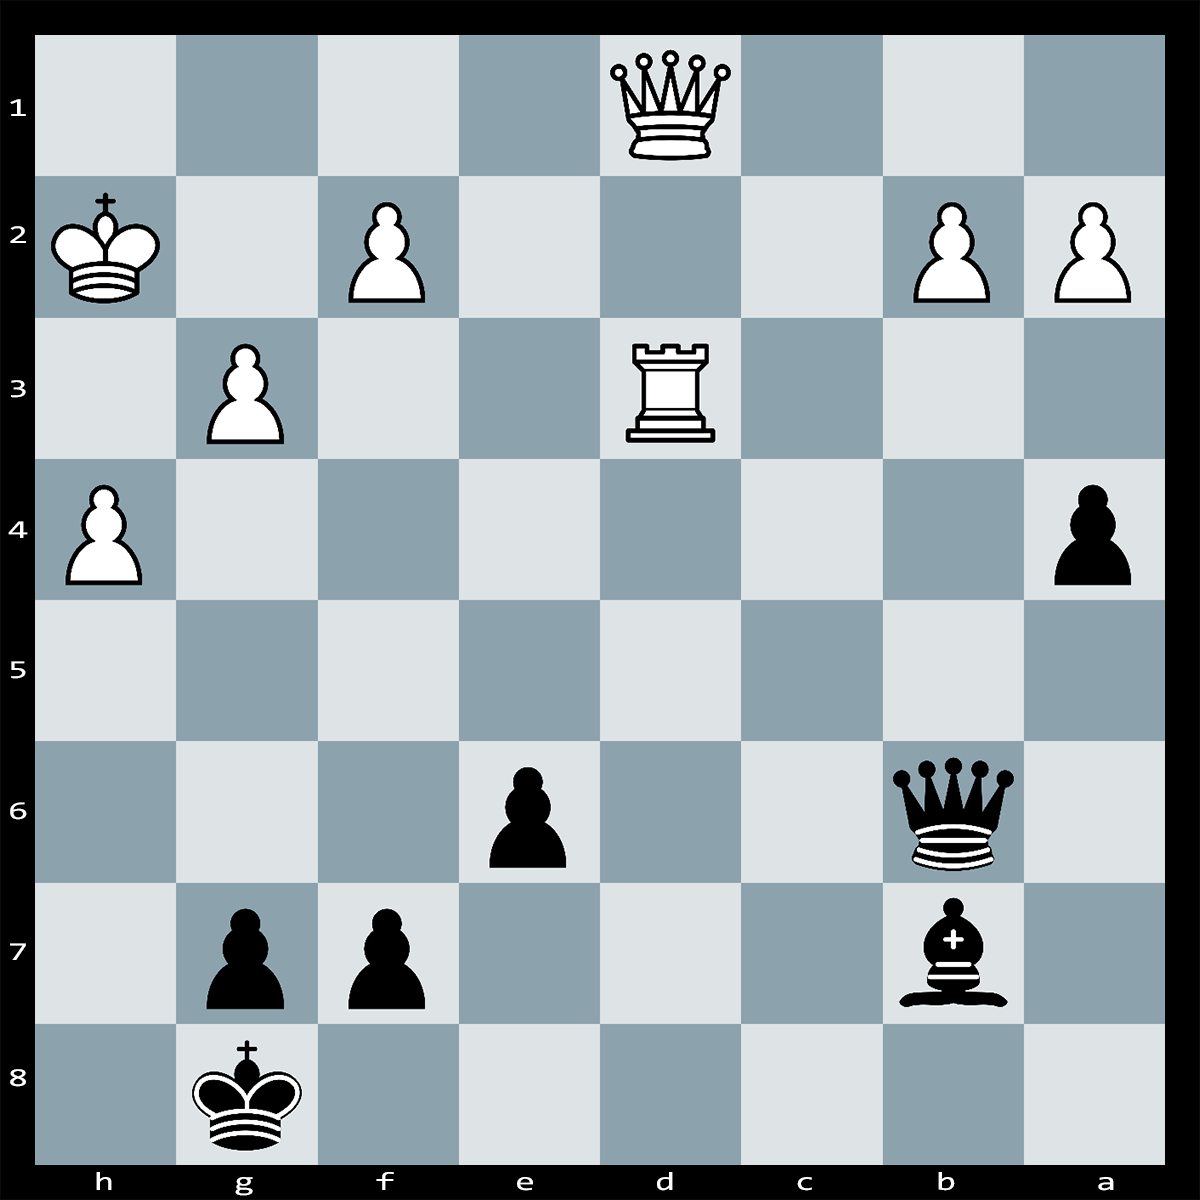 Chess Puzzle #326 | Black to Move, can you find the winning combination to this puzzle? Difficulty: Easy.